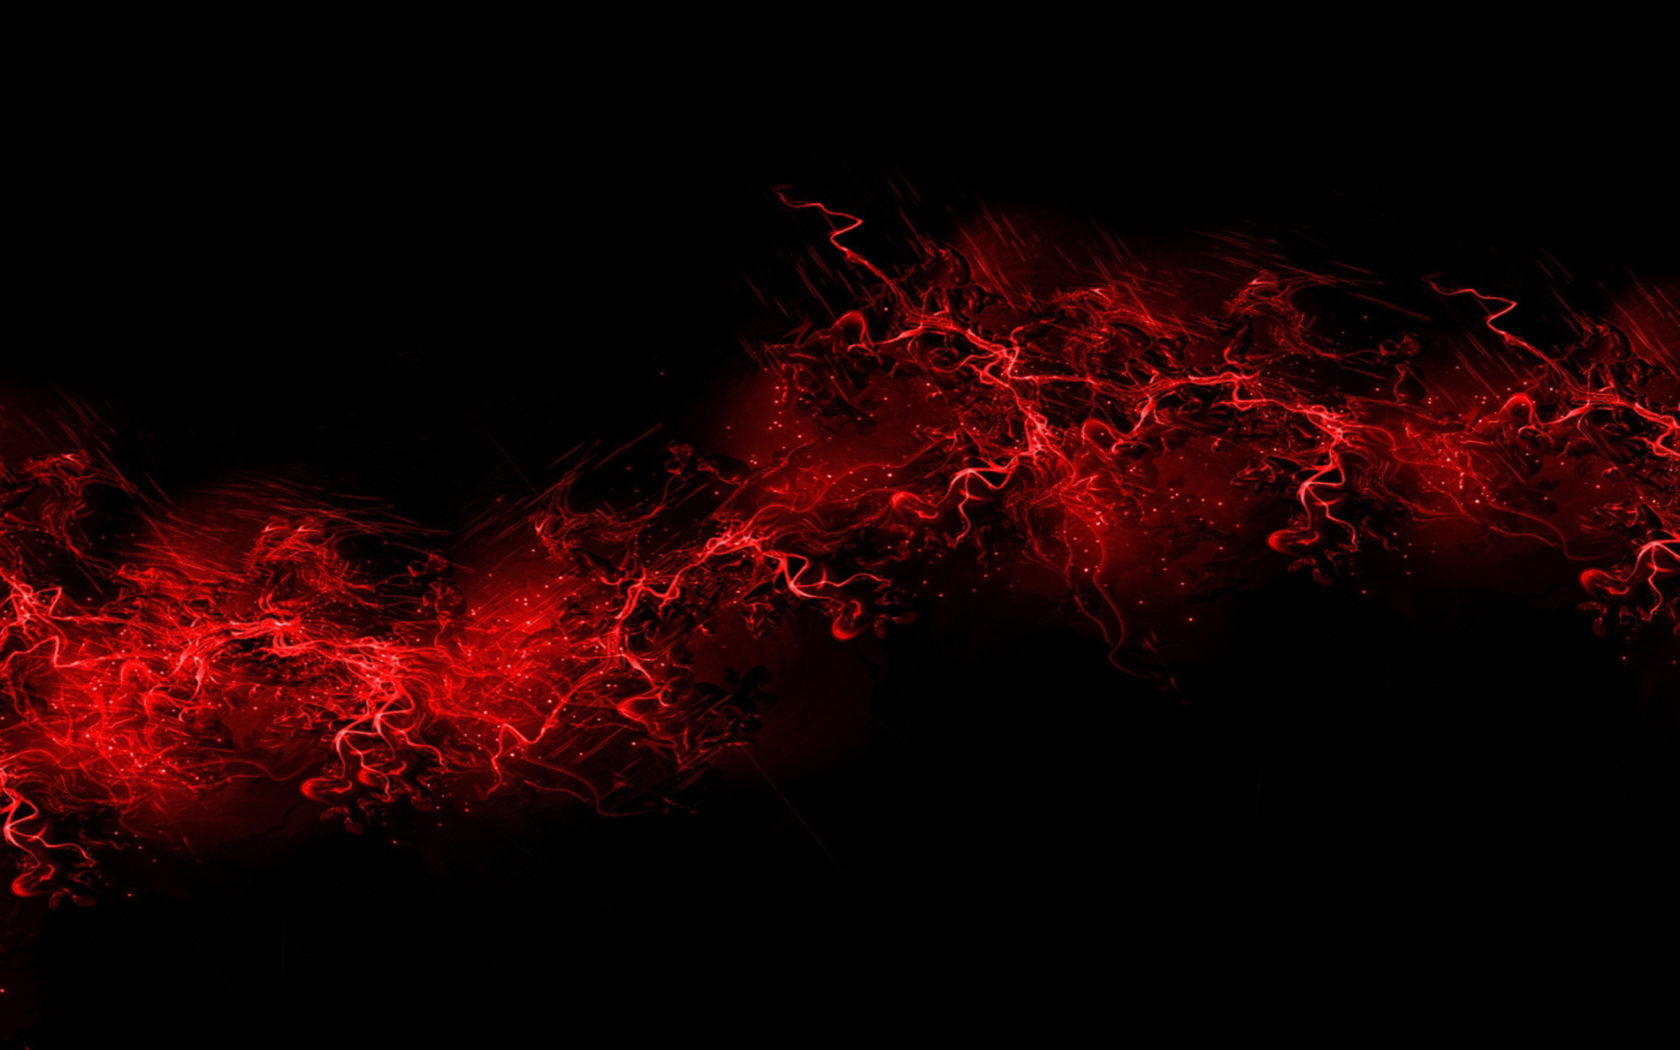 3d Wallpaper For Nexus 5 Black Background Red Color Paint Explosion Burst 746